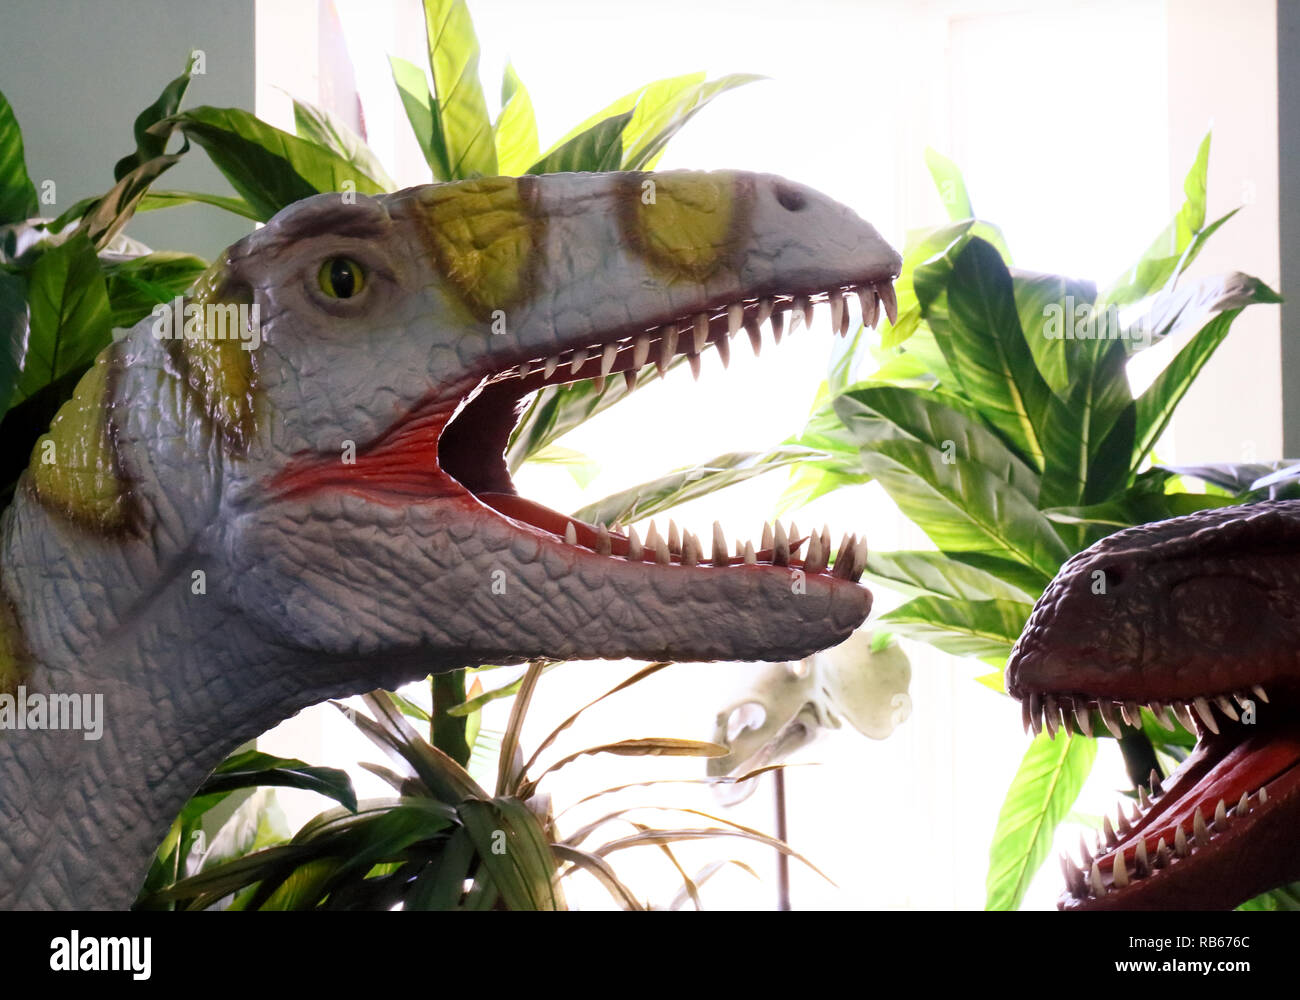 A visit to Cabazon, California, to see Claude Bell's dinosaurs in a roadside attraction turned Creationist channel. - Stock Image